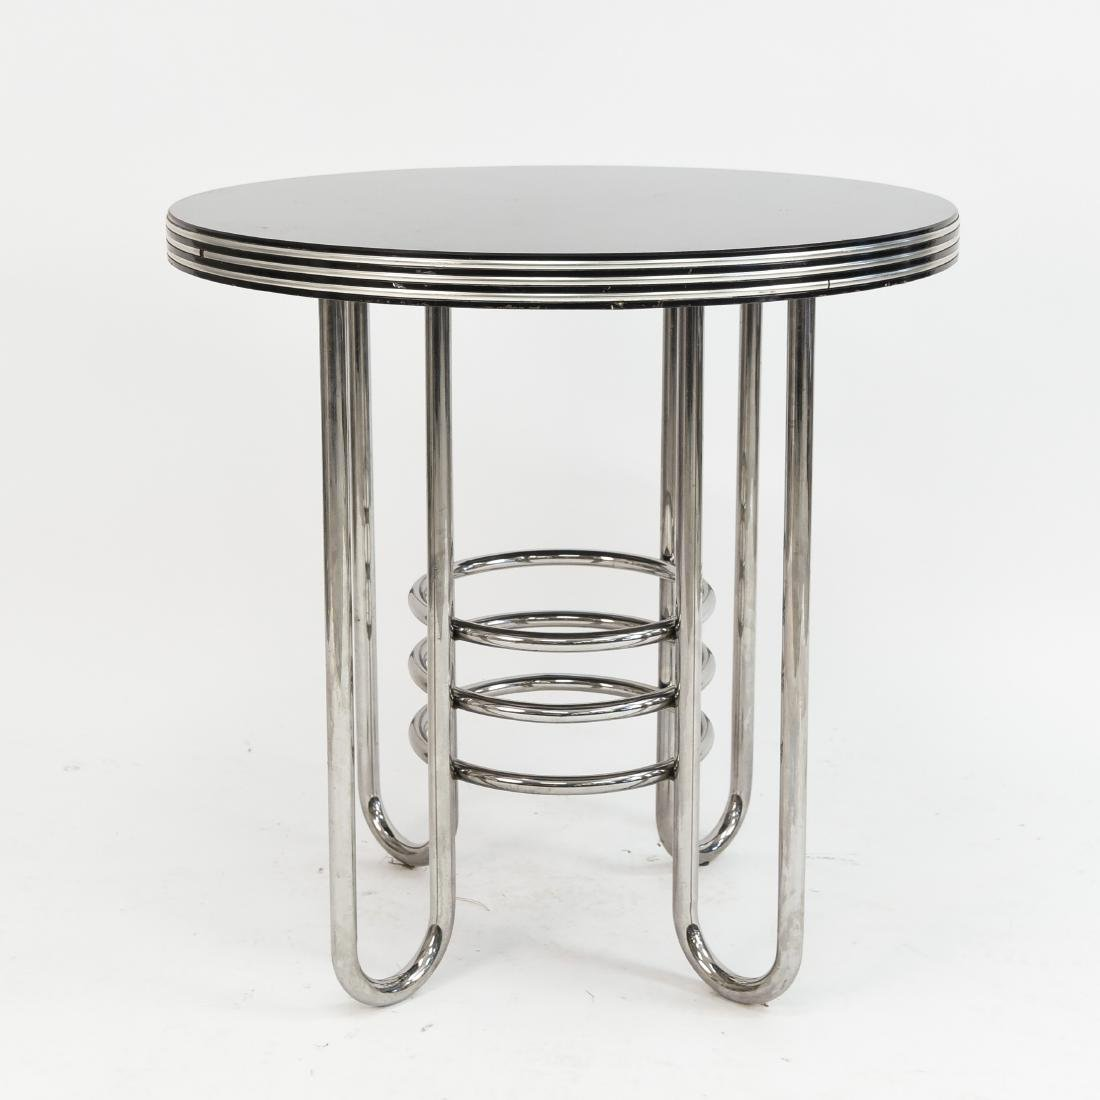 ART DECO MACHINE AGE OCCASIONAL TABLE